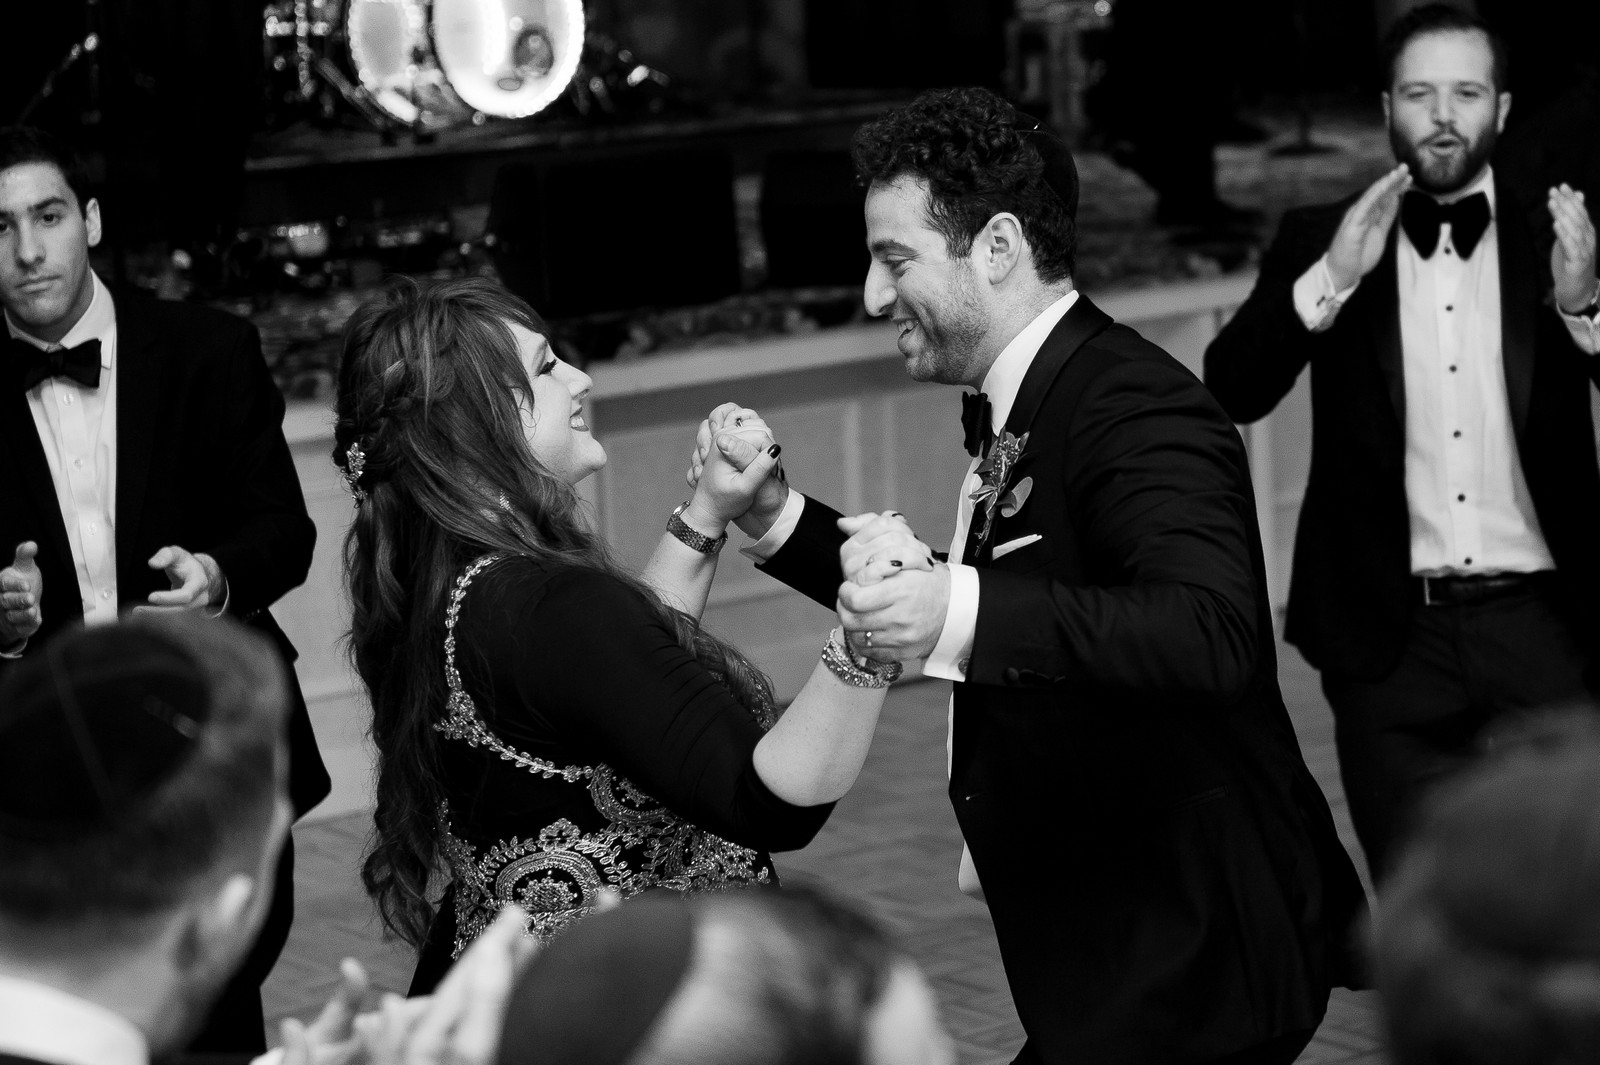 Yoey and Aaron's Memorial Day Modern Jewish Wedding at Anthony's Pier 9, New Windsor, NY Photos by Chaim Schvarcz mother son groom dance